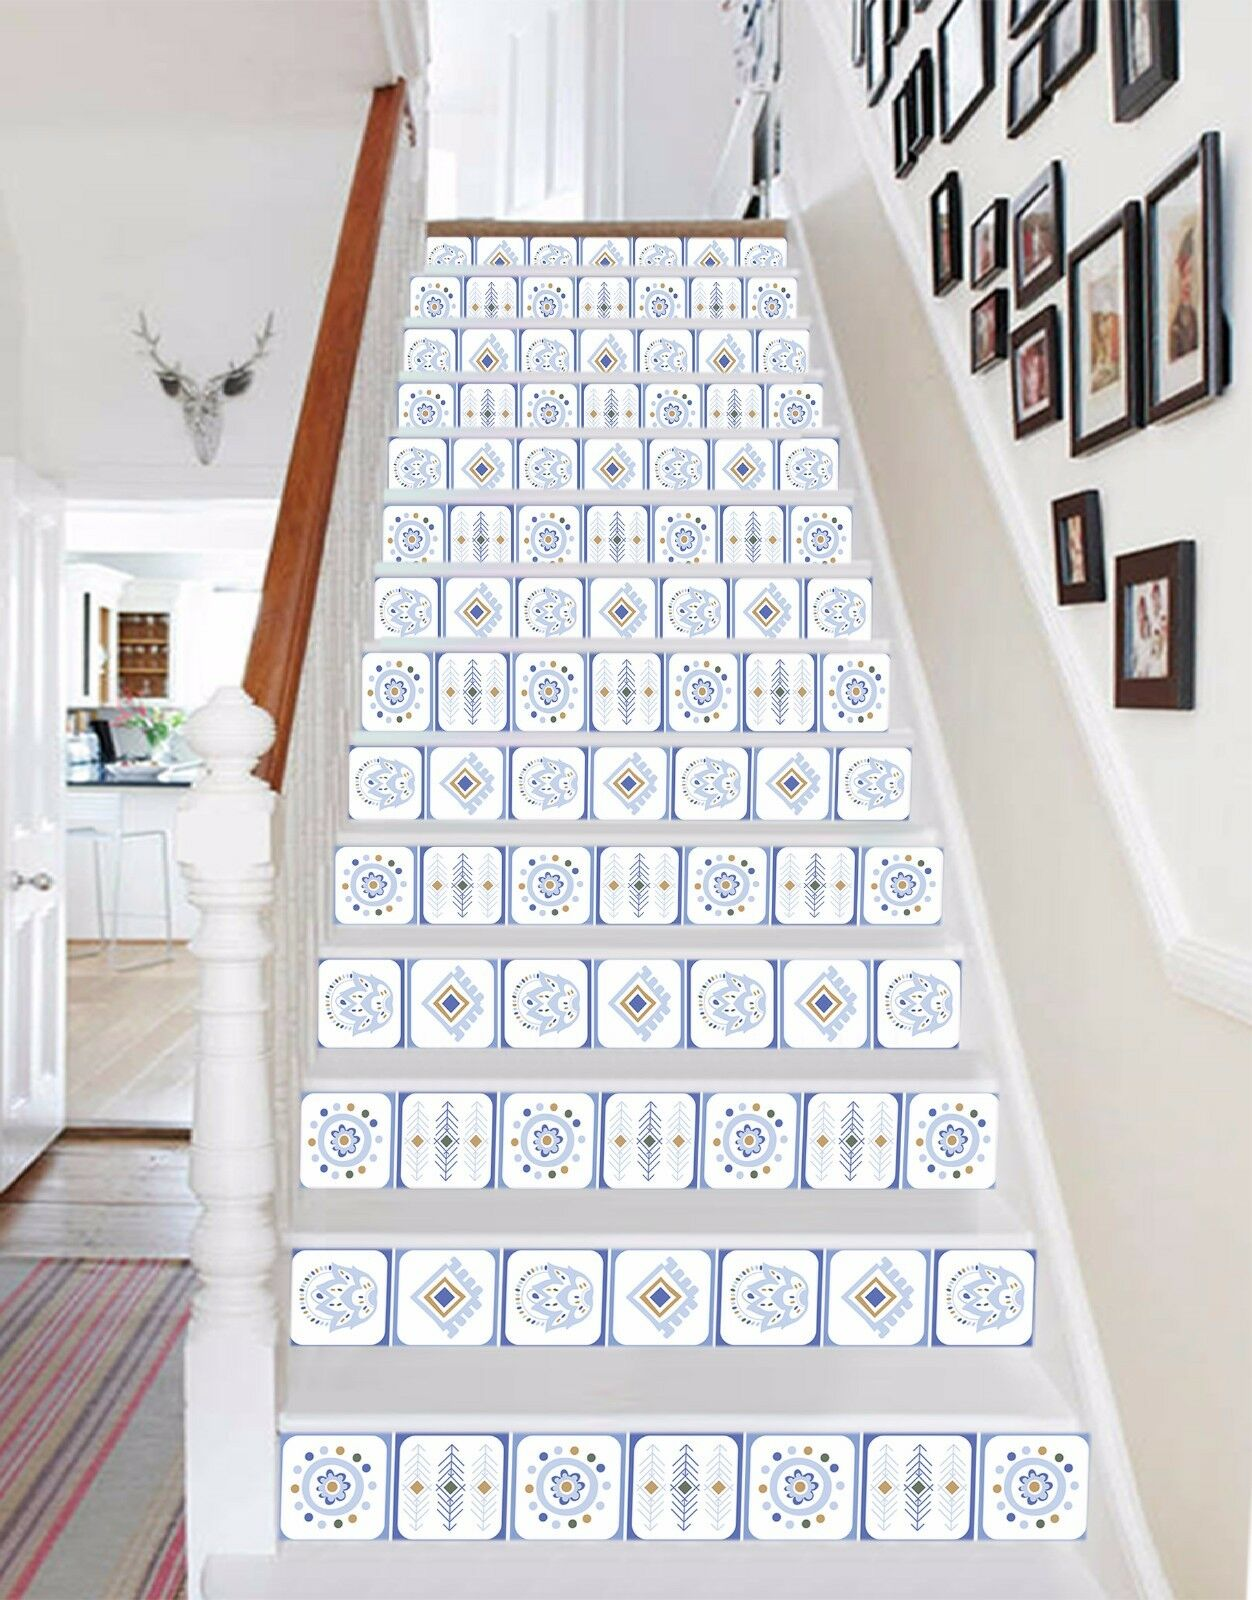 3D Grid 447 Stair Risers Decoration Photo Mural Vinyl Decal Wallpaper UK Lemon